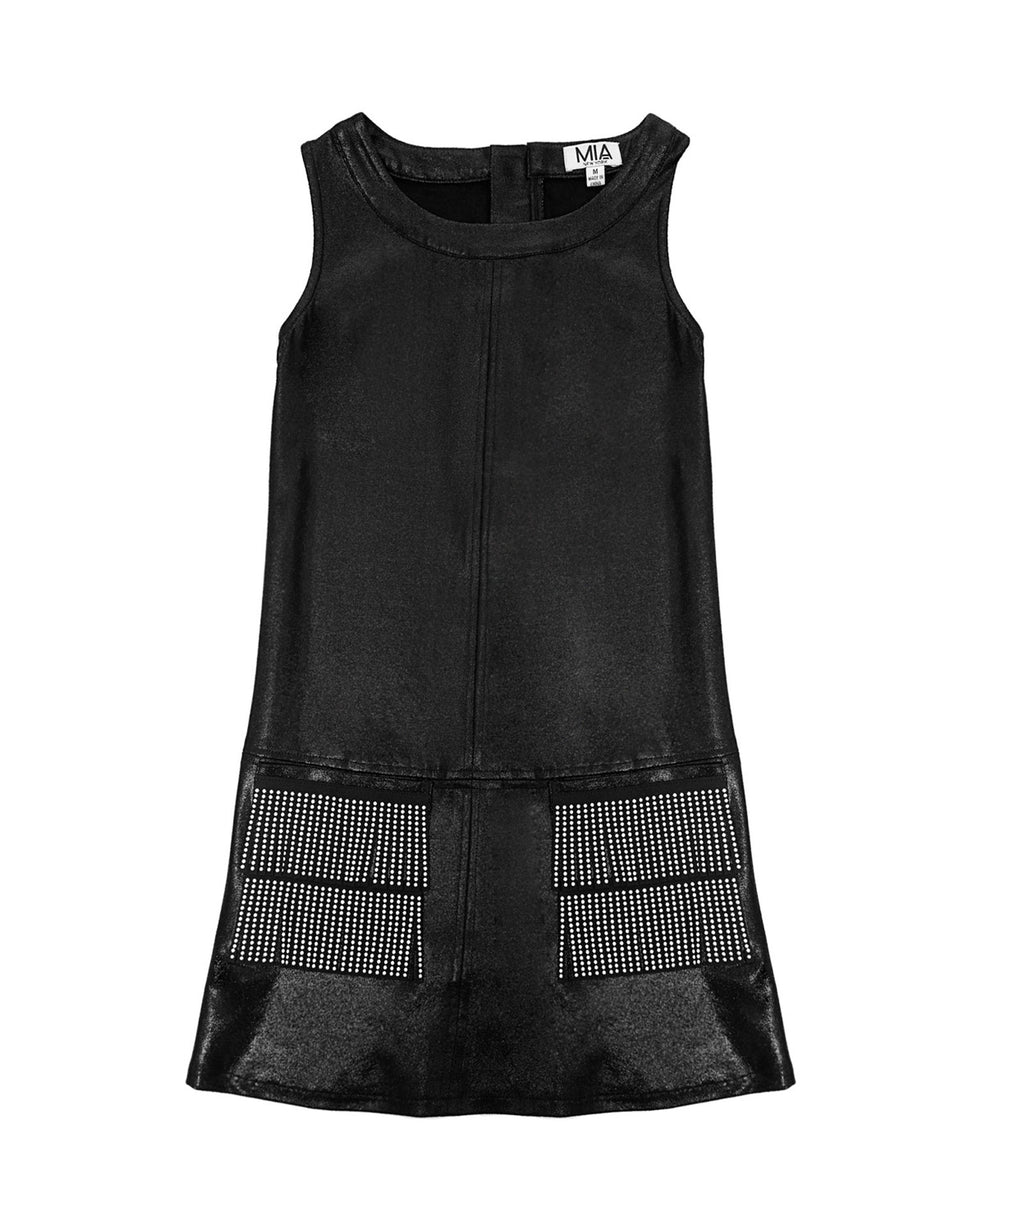 MIA Girls Stud Fringe Dress